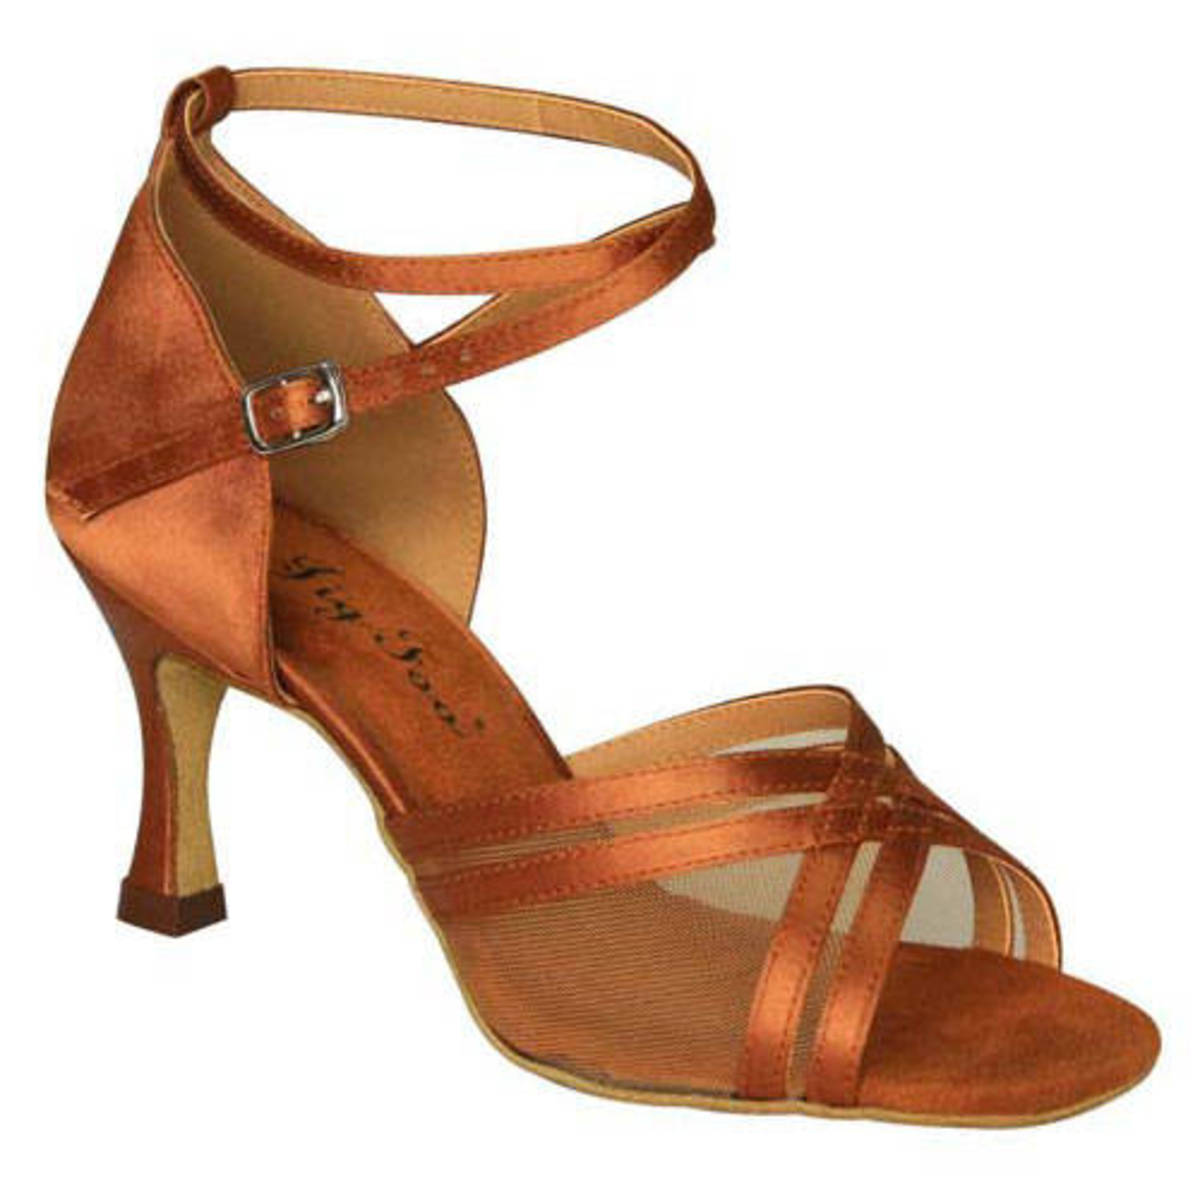 A spectacular suede bottom latin dance shoe